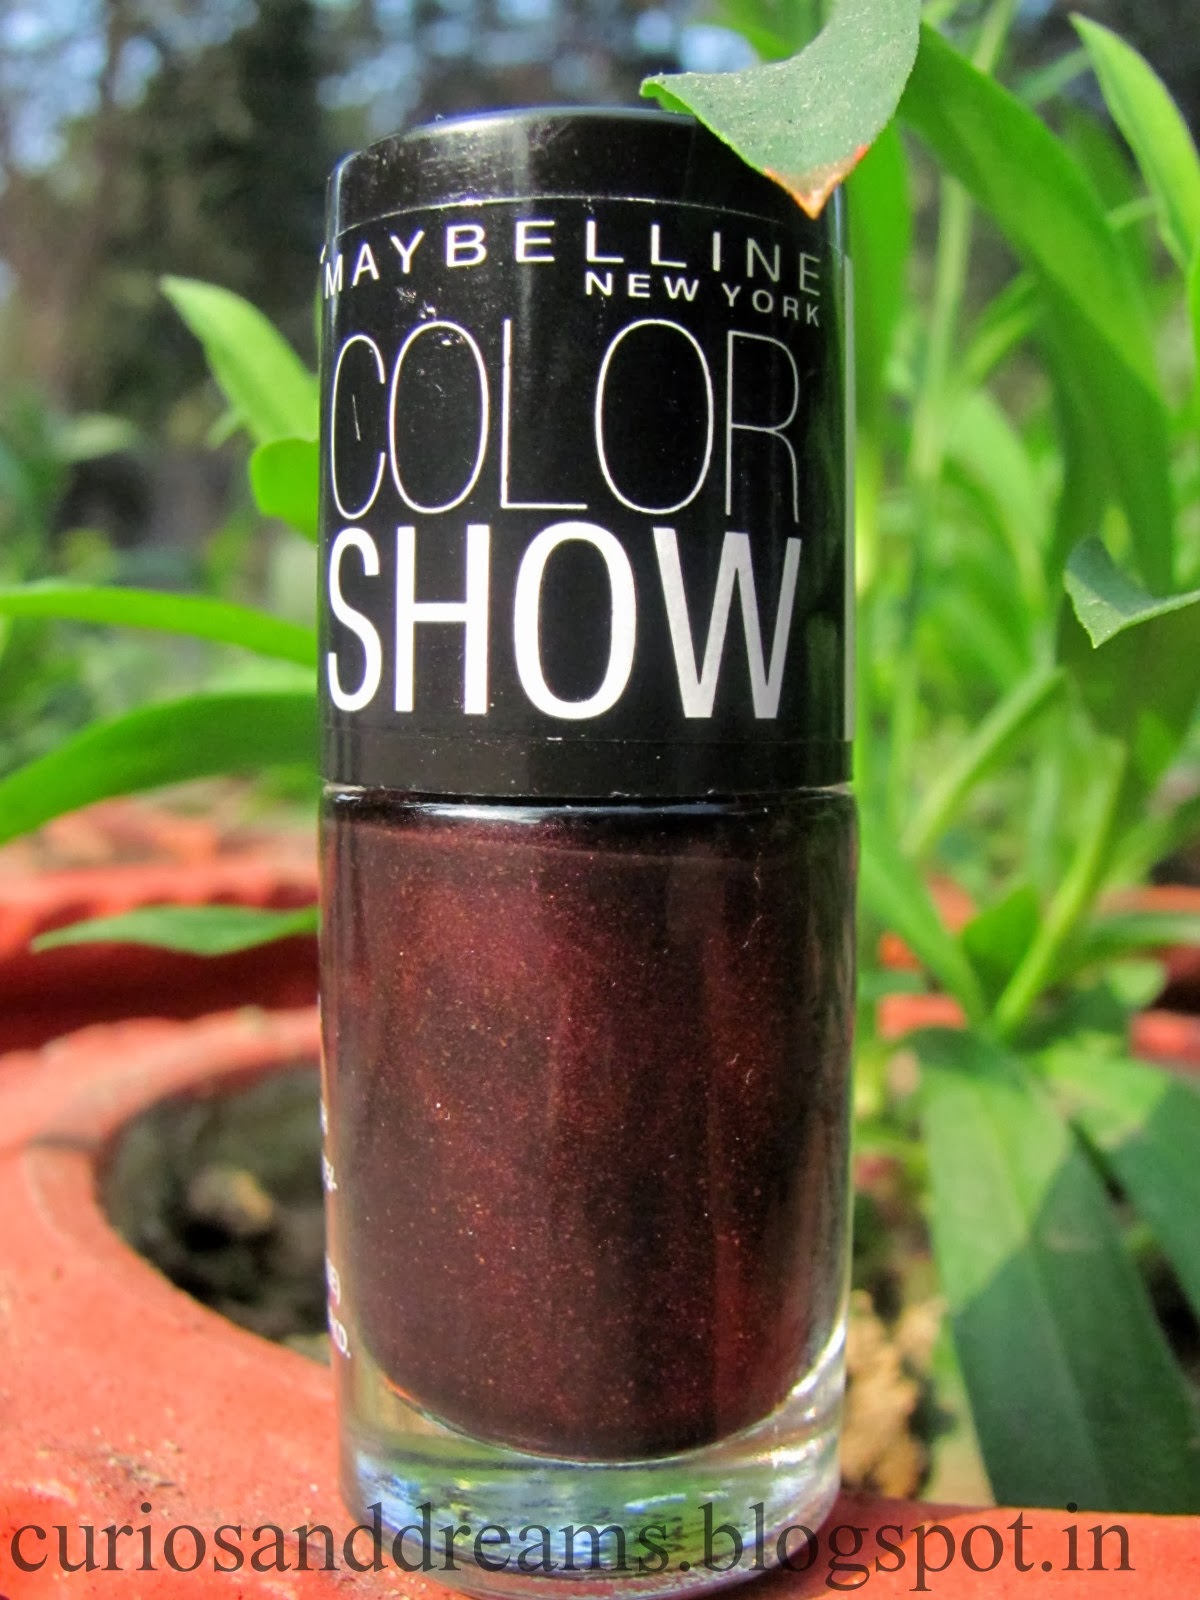 Maybelline Color Show Wine and Dine Review, Maybelline Color Show